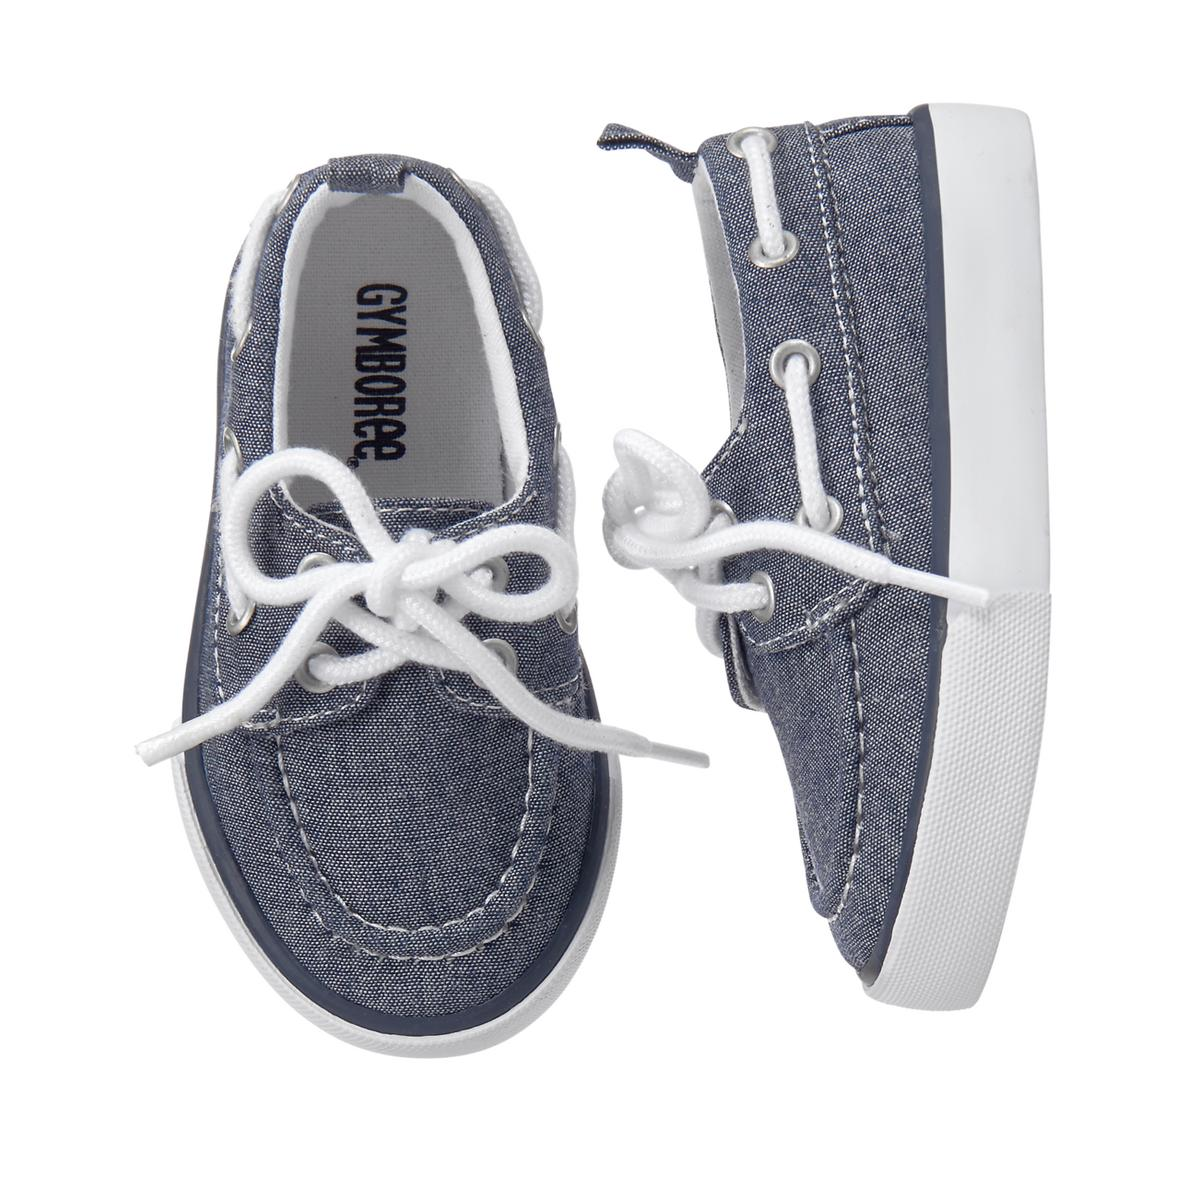 Toddler Boys Boat Shoes: Sale $6.99, Regular $29.95